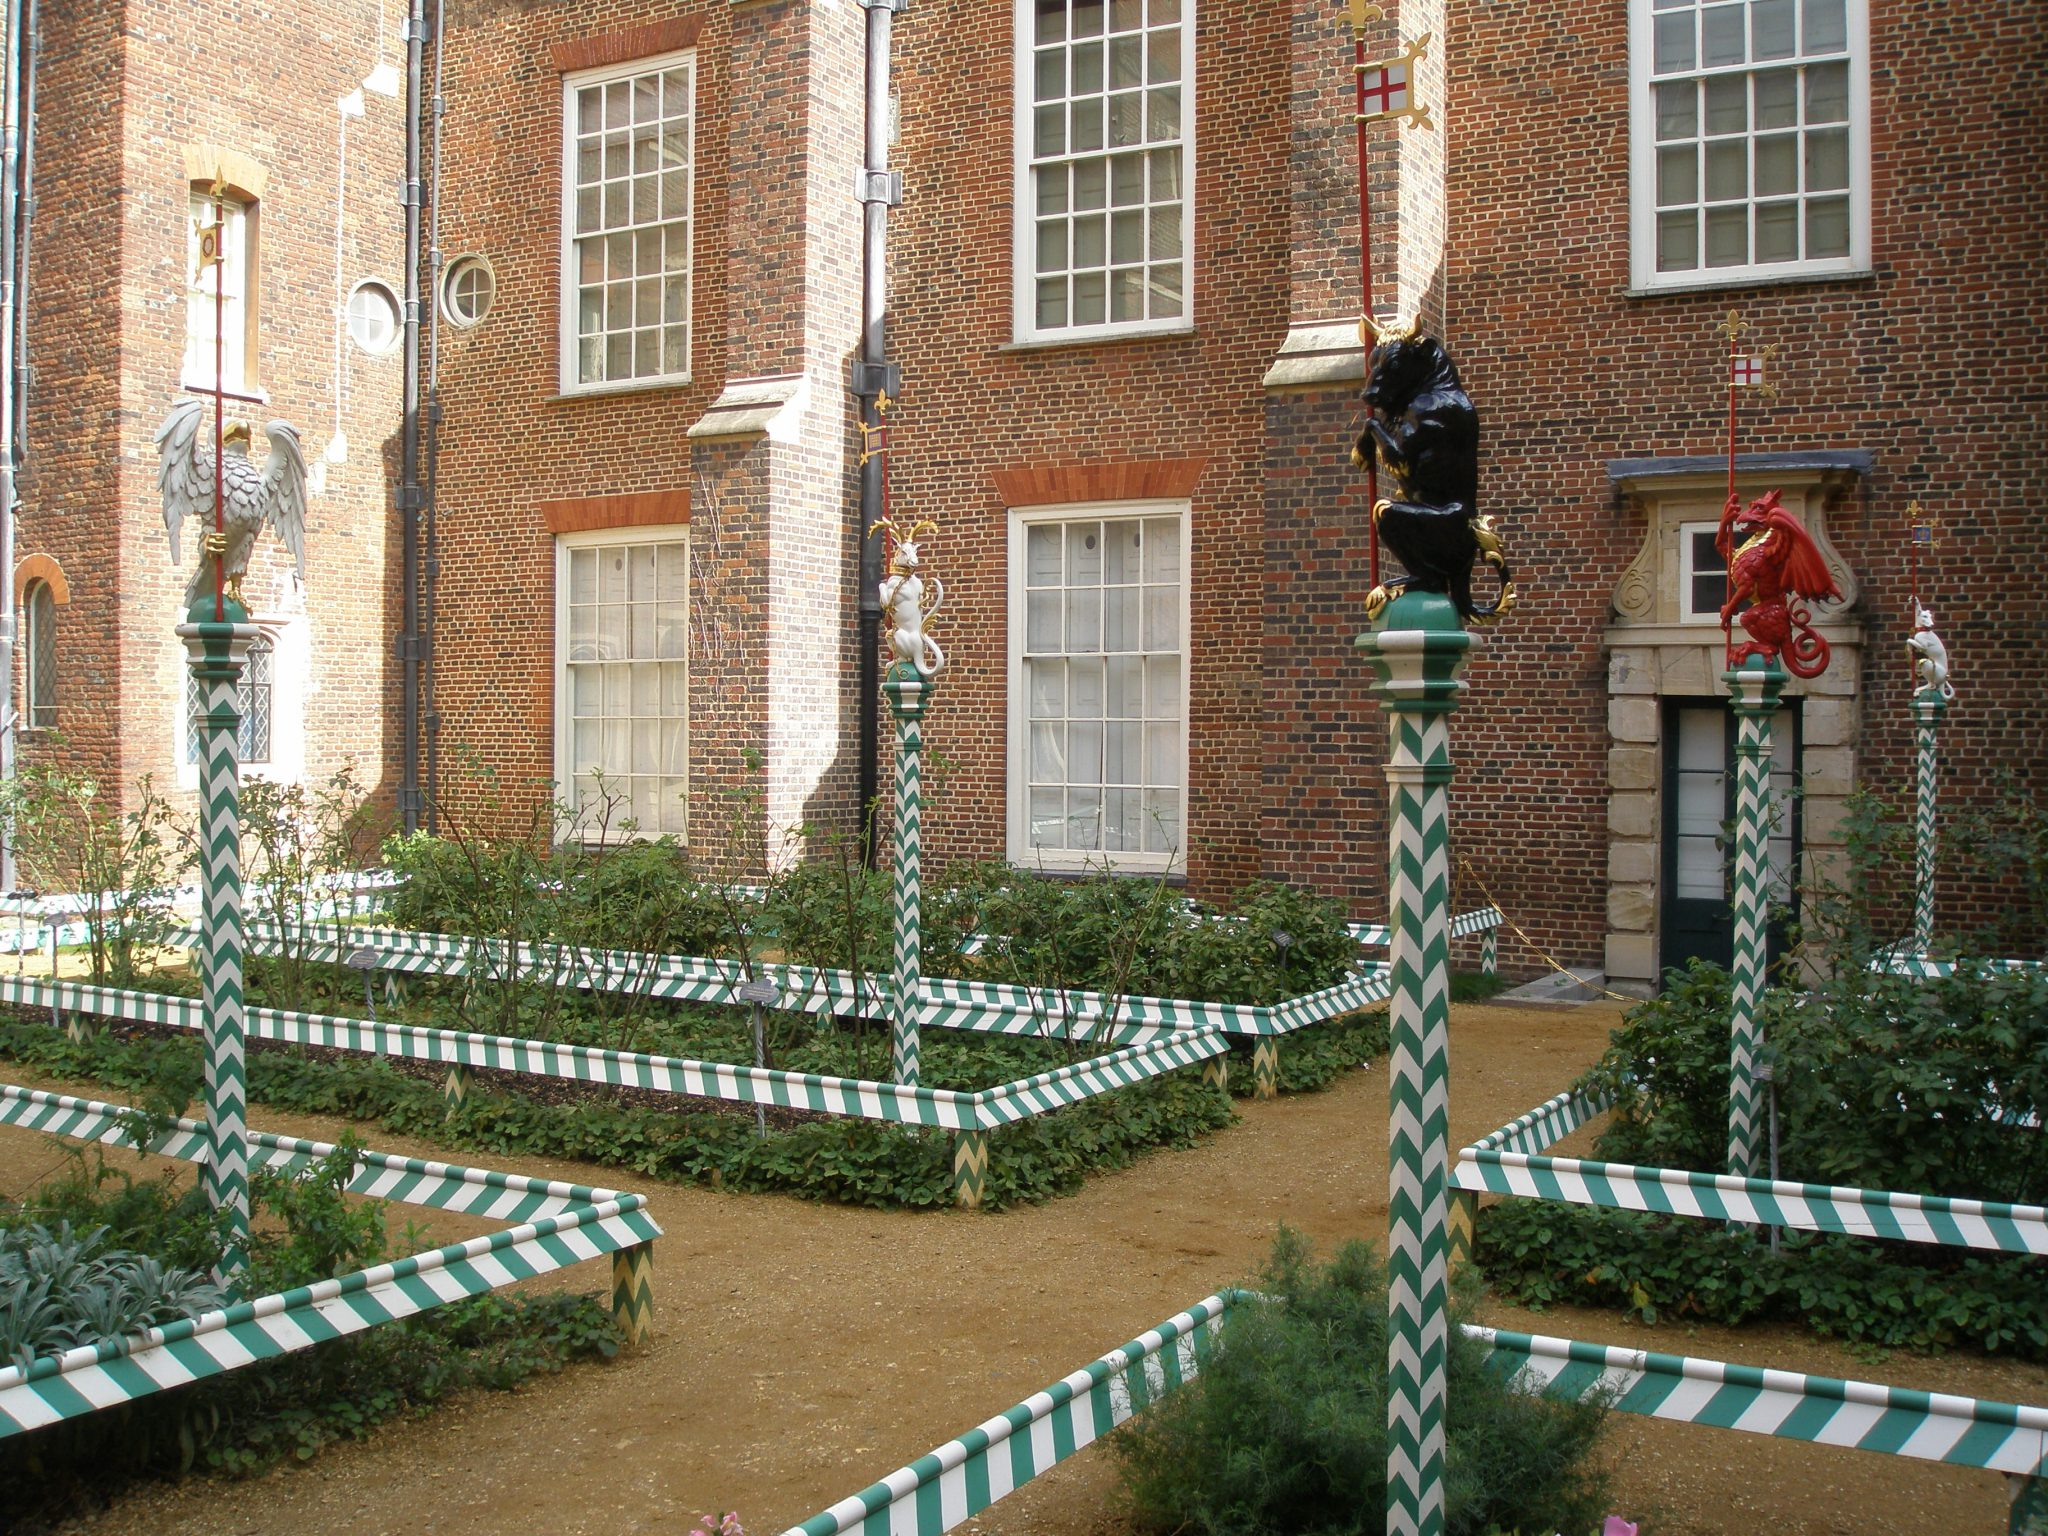 Chapel Court Garden, with low rails in the Tudor colors of white & green. Period plantings of primroses, strawberries & violets are still maintained. Henry created this garden in the 1530's.